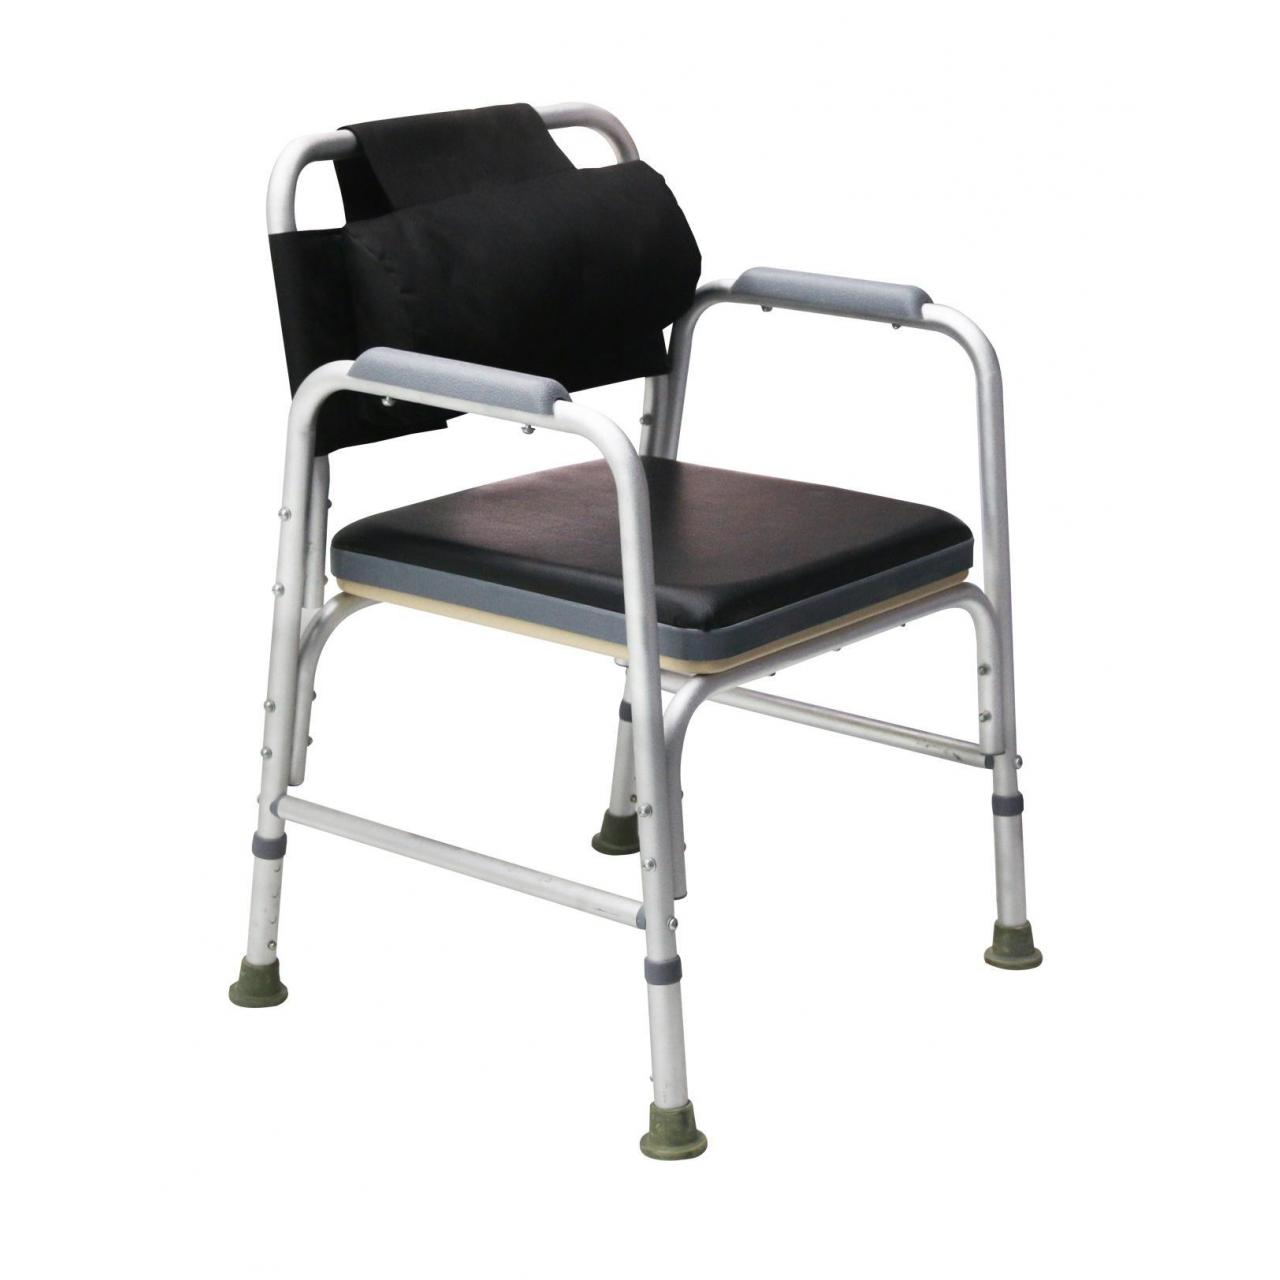 Comfortable chairs for the elderly images images of for Comfortable chairs for seniors